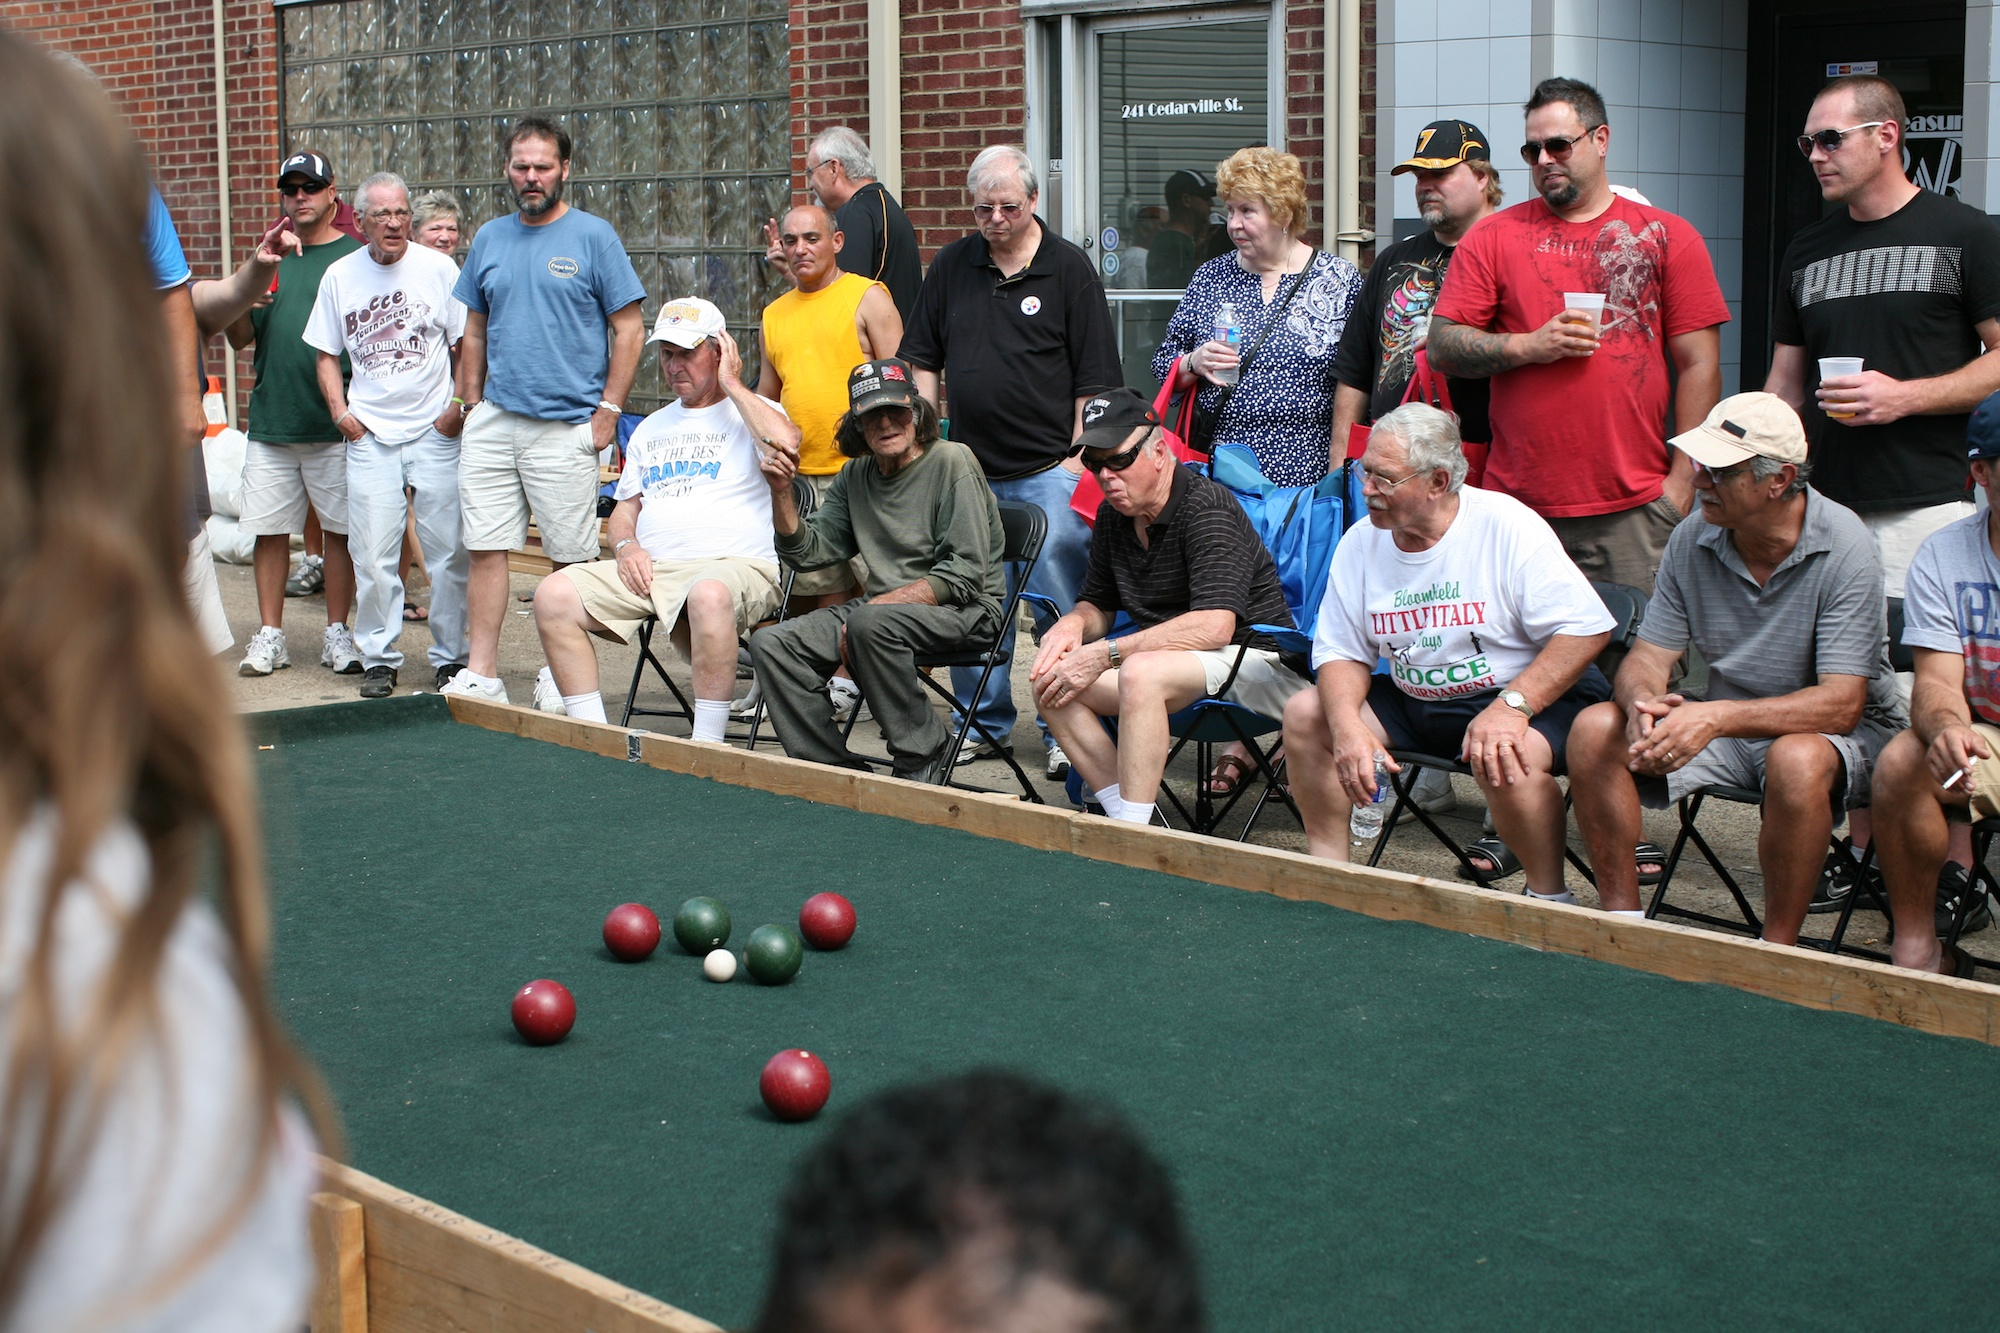 Watching Bocce